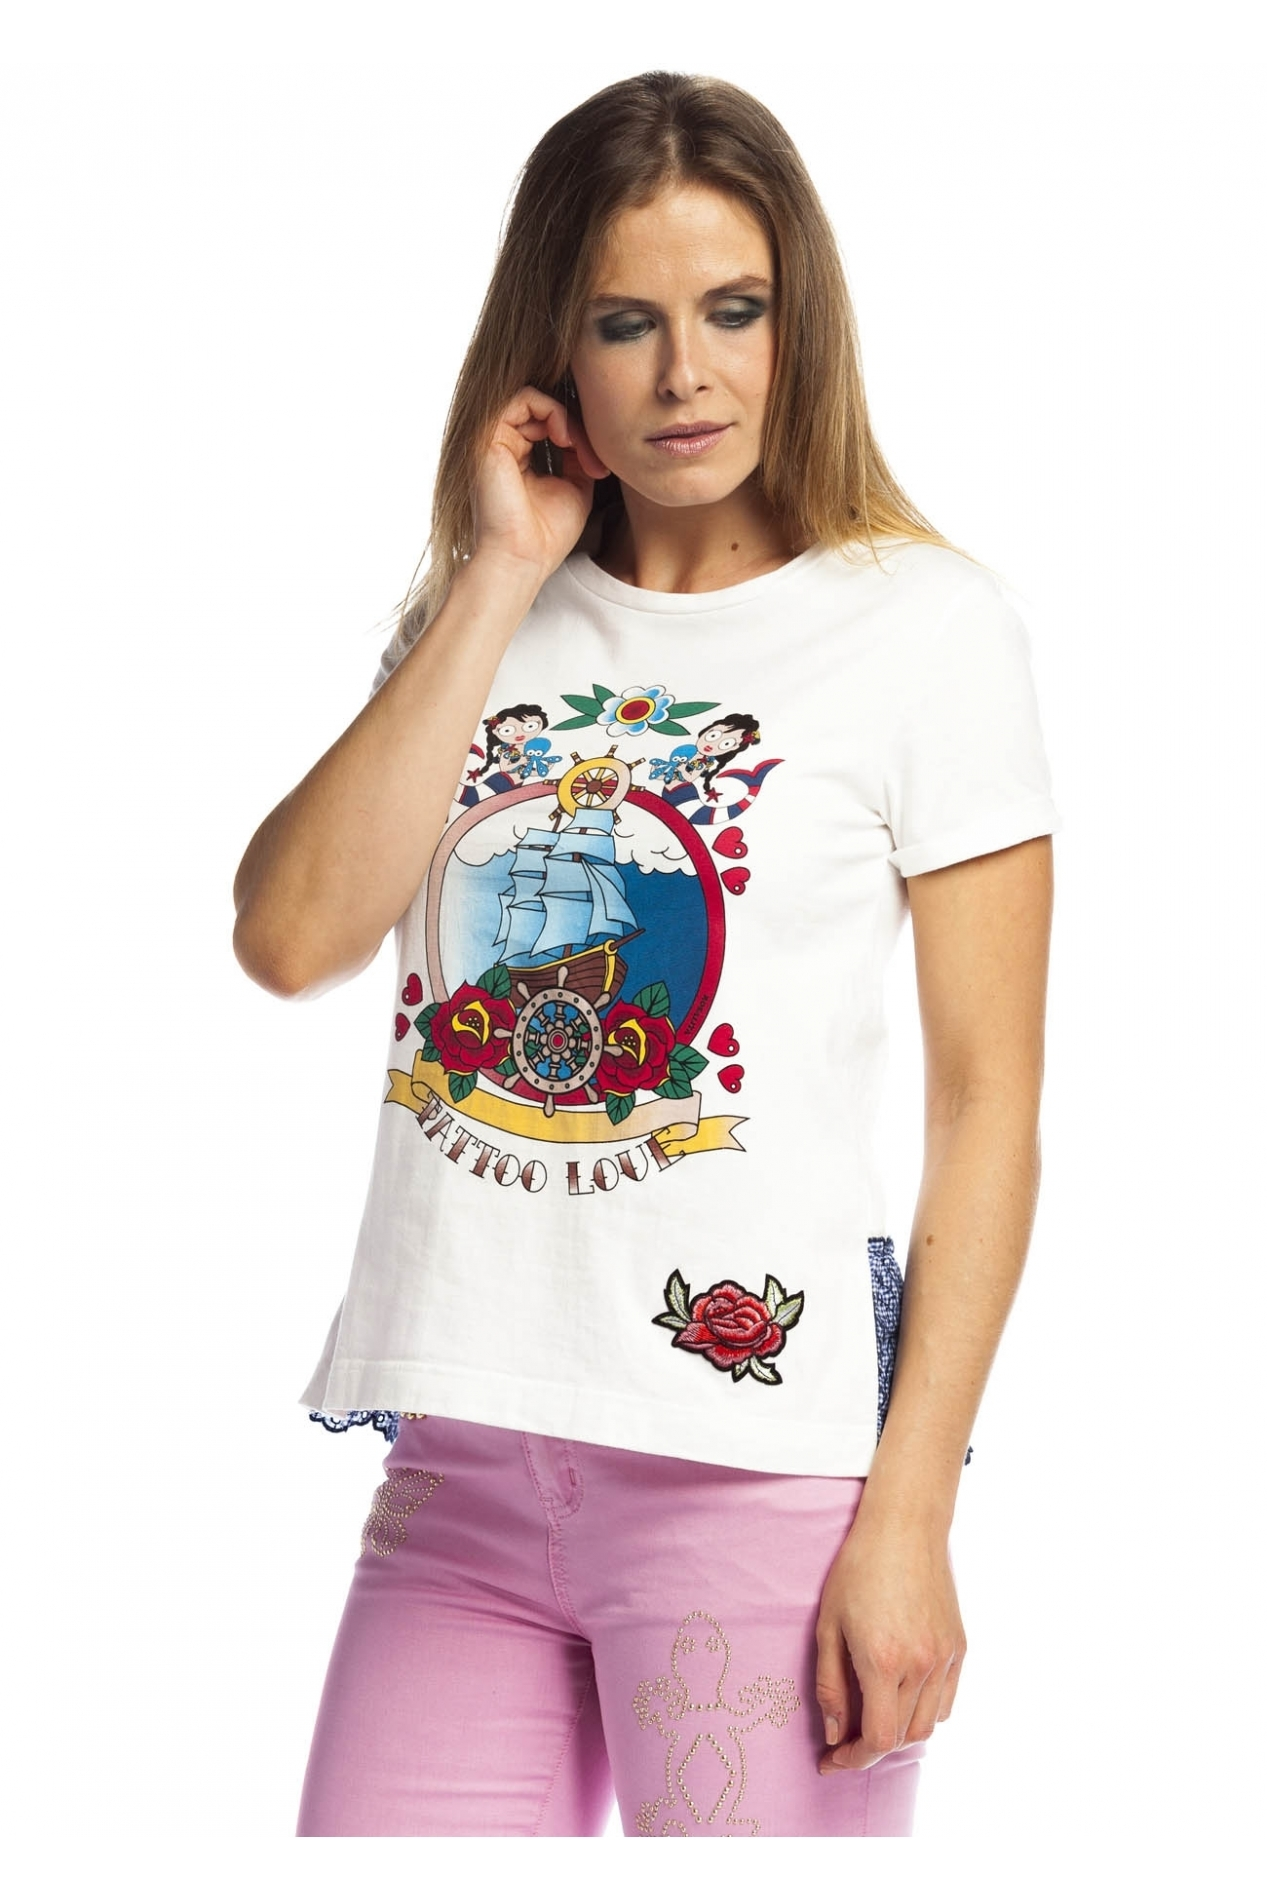 Rosalita McGee: Sailor Art Rose Tatt Cotton Top RM_PALOMA